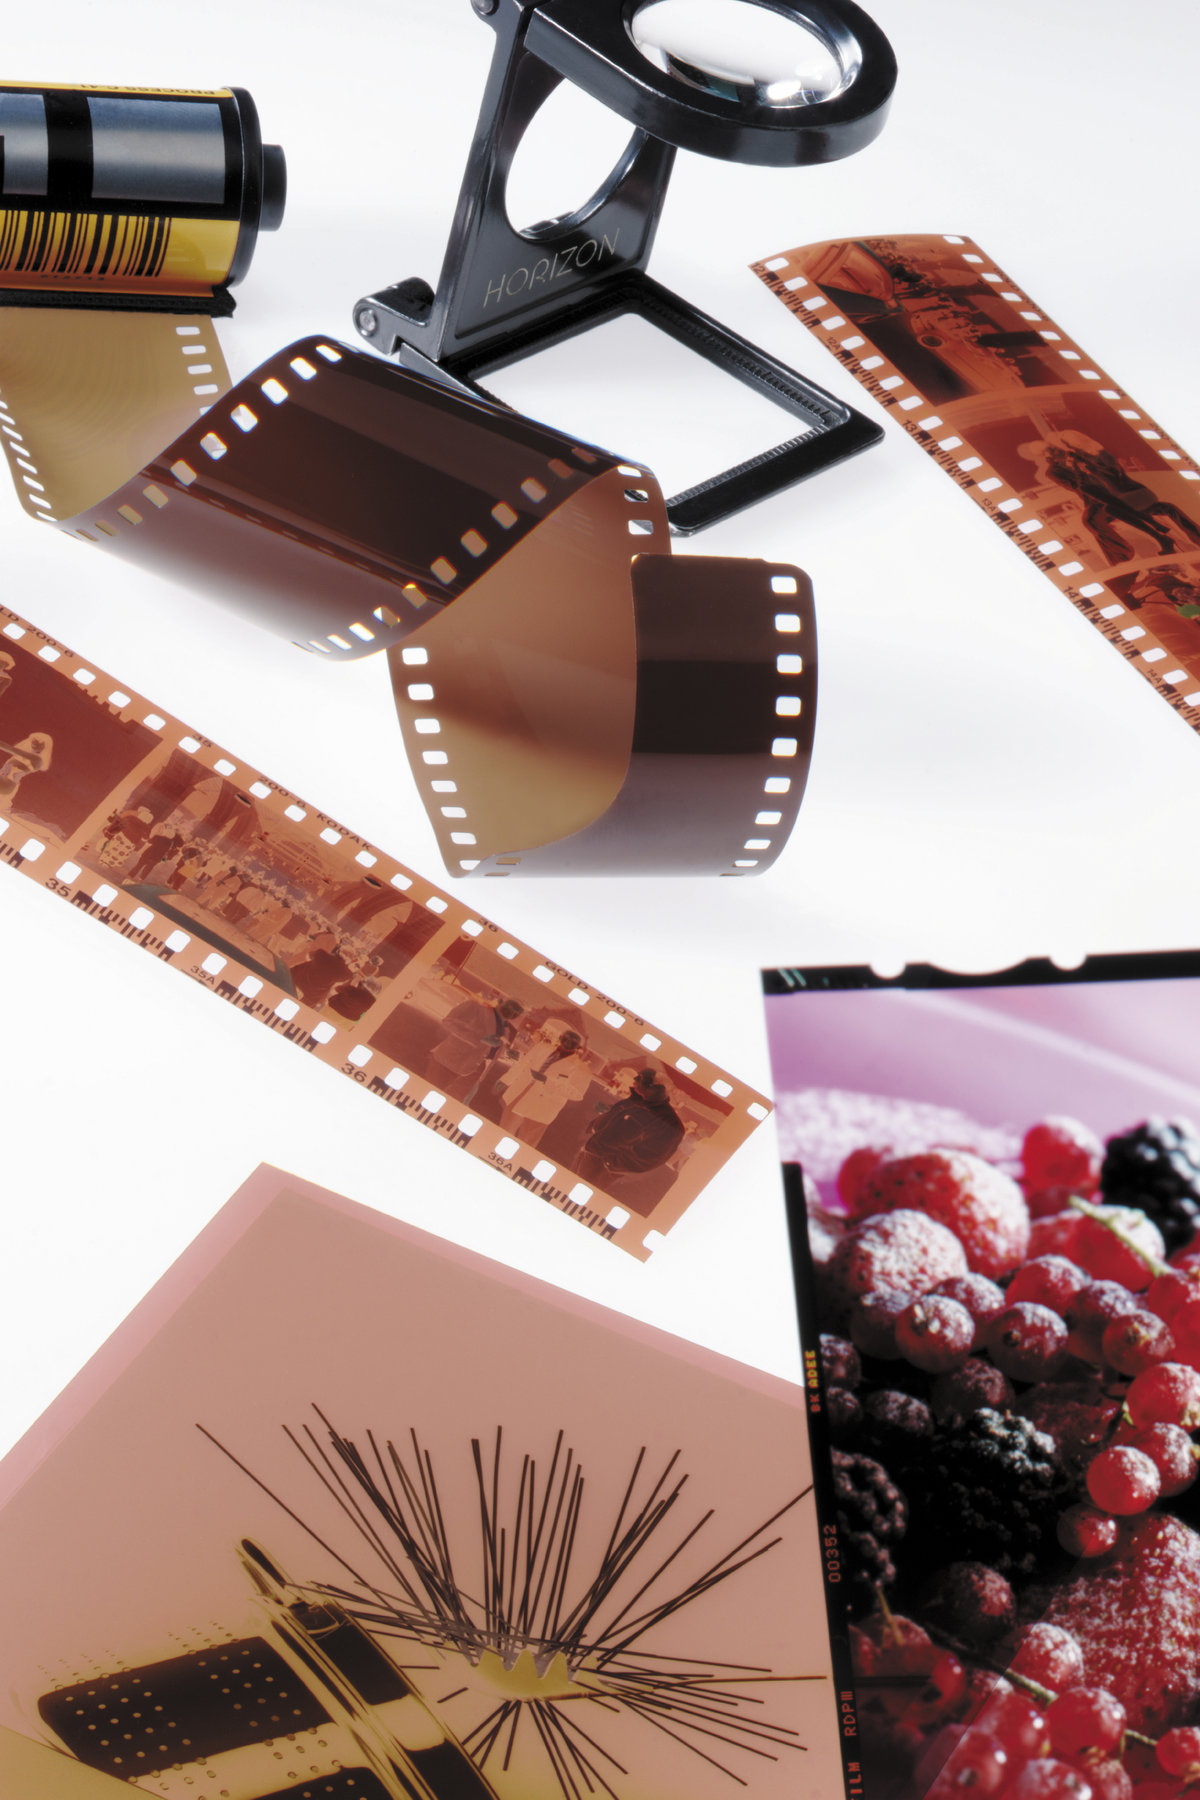 [Translate to Chinese:] film reel and pictures